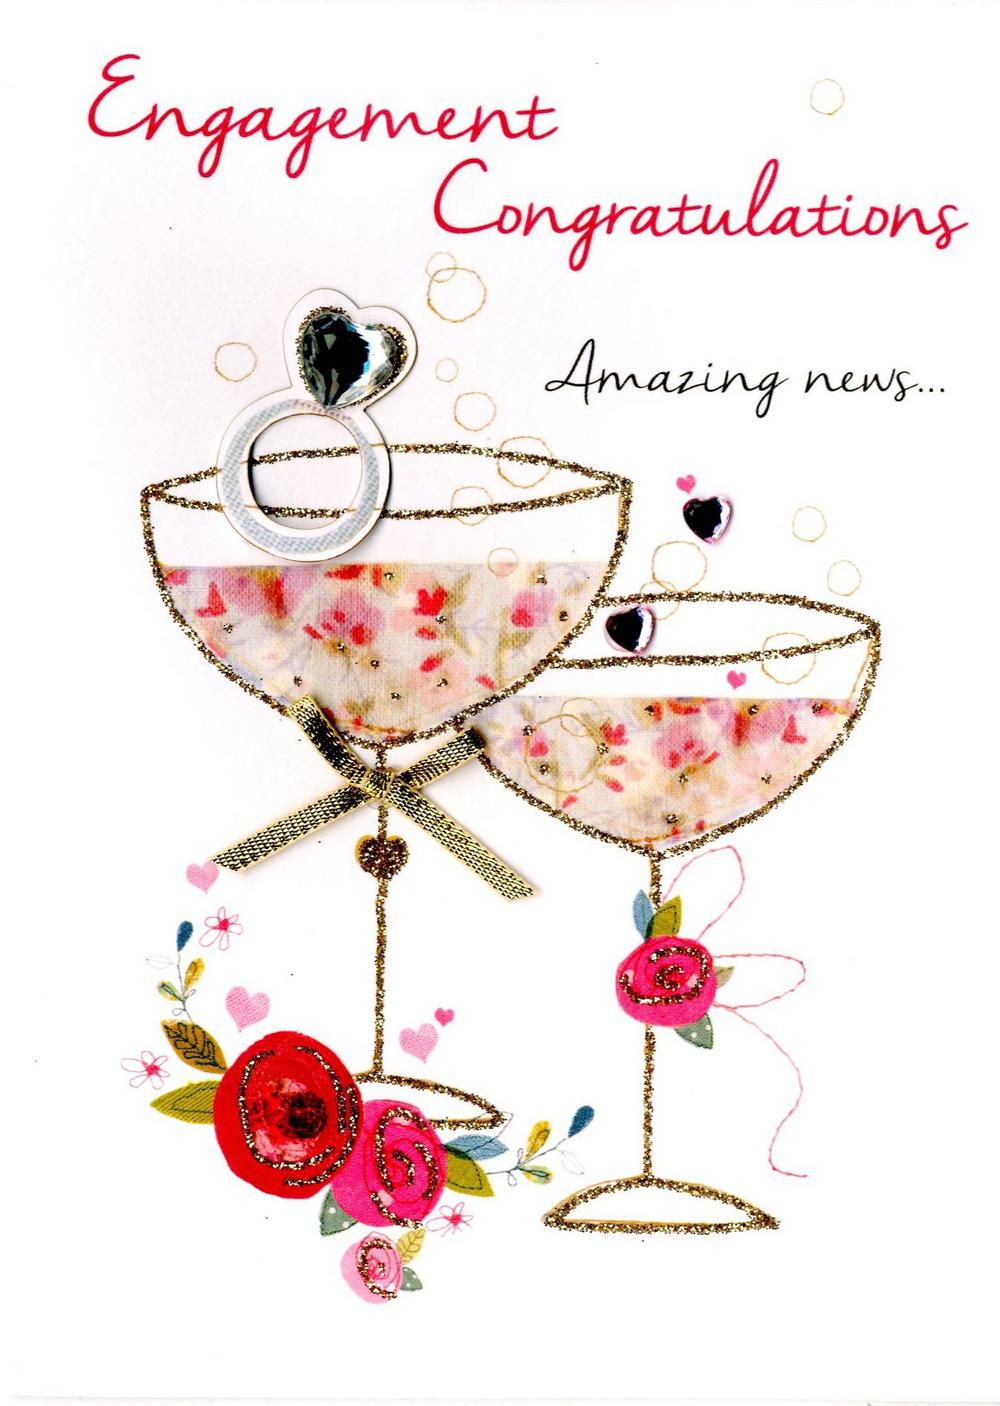 Engagement clipart engagement card. Congratulations greeting cards love